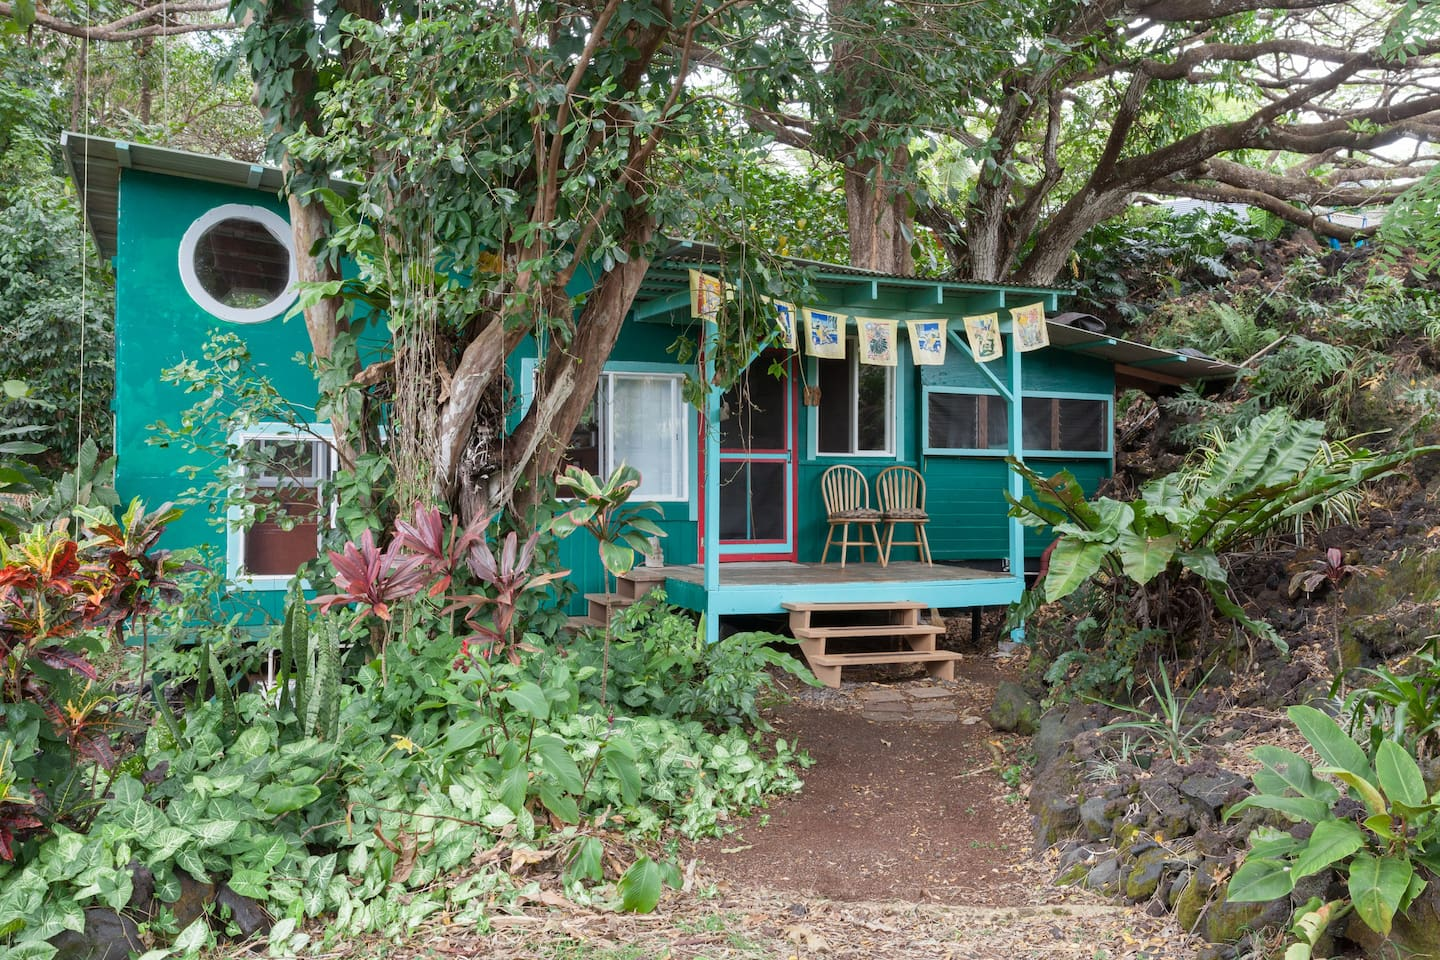 The Magical Grotto Cottage was begun in 1991 and hidden away under ancient and giant trees that create a thirty foot canopy. There is some history as the exterior wood was once the flooring of a stage that the owner built in Madison Wisconsin.